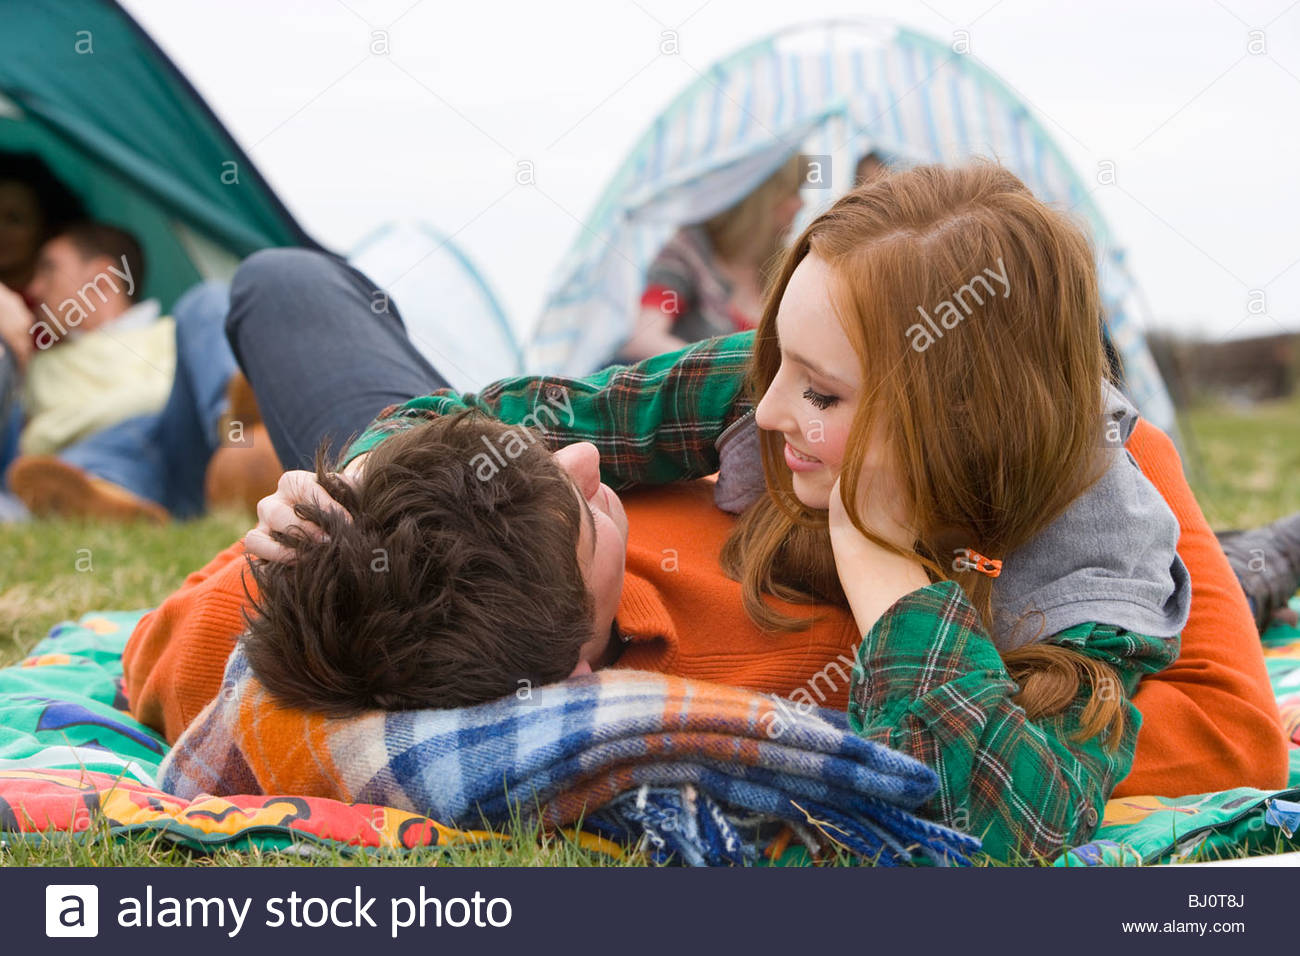 Romantic couple camping and attending outdoor festival - Stock Image